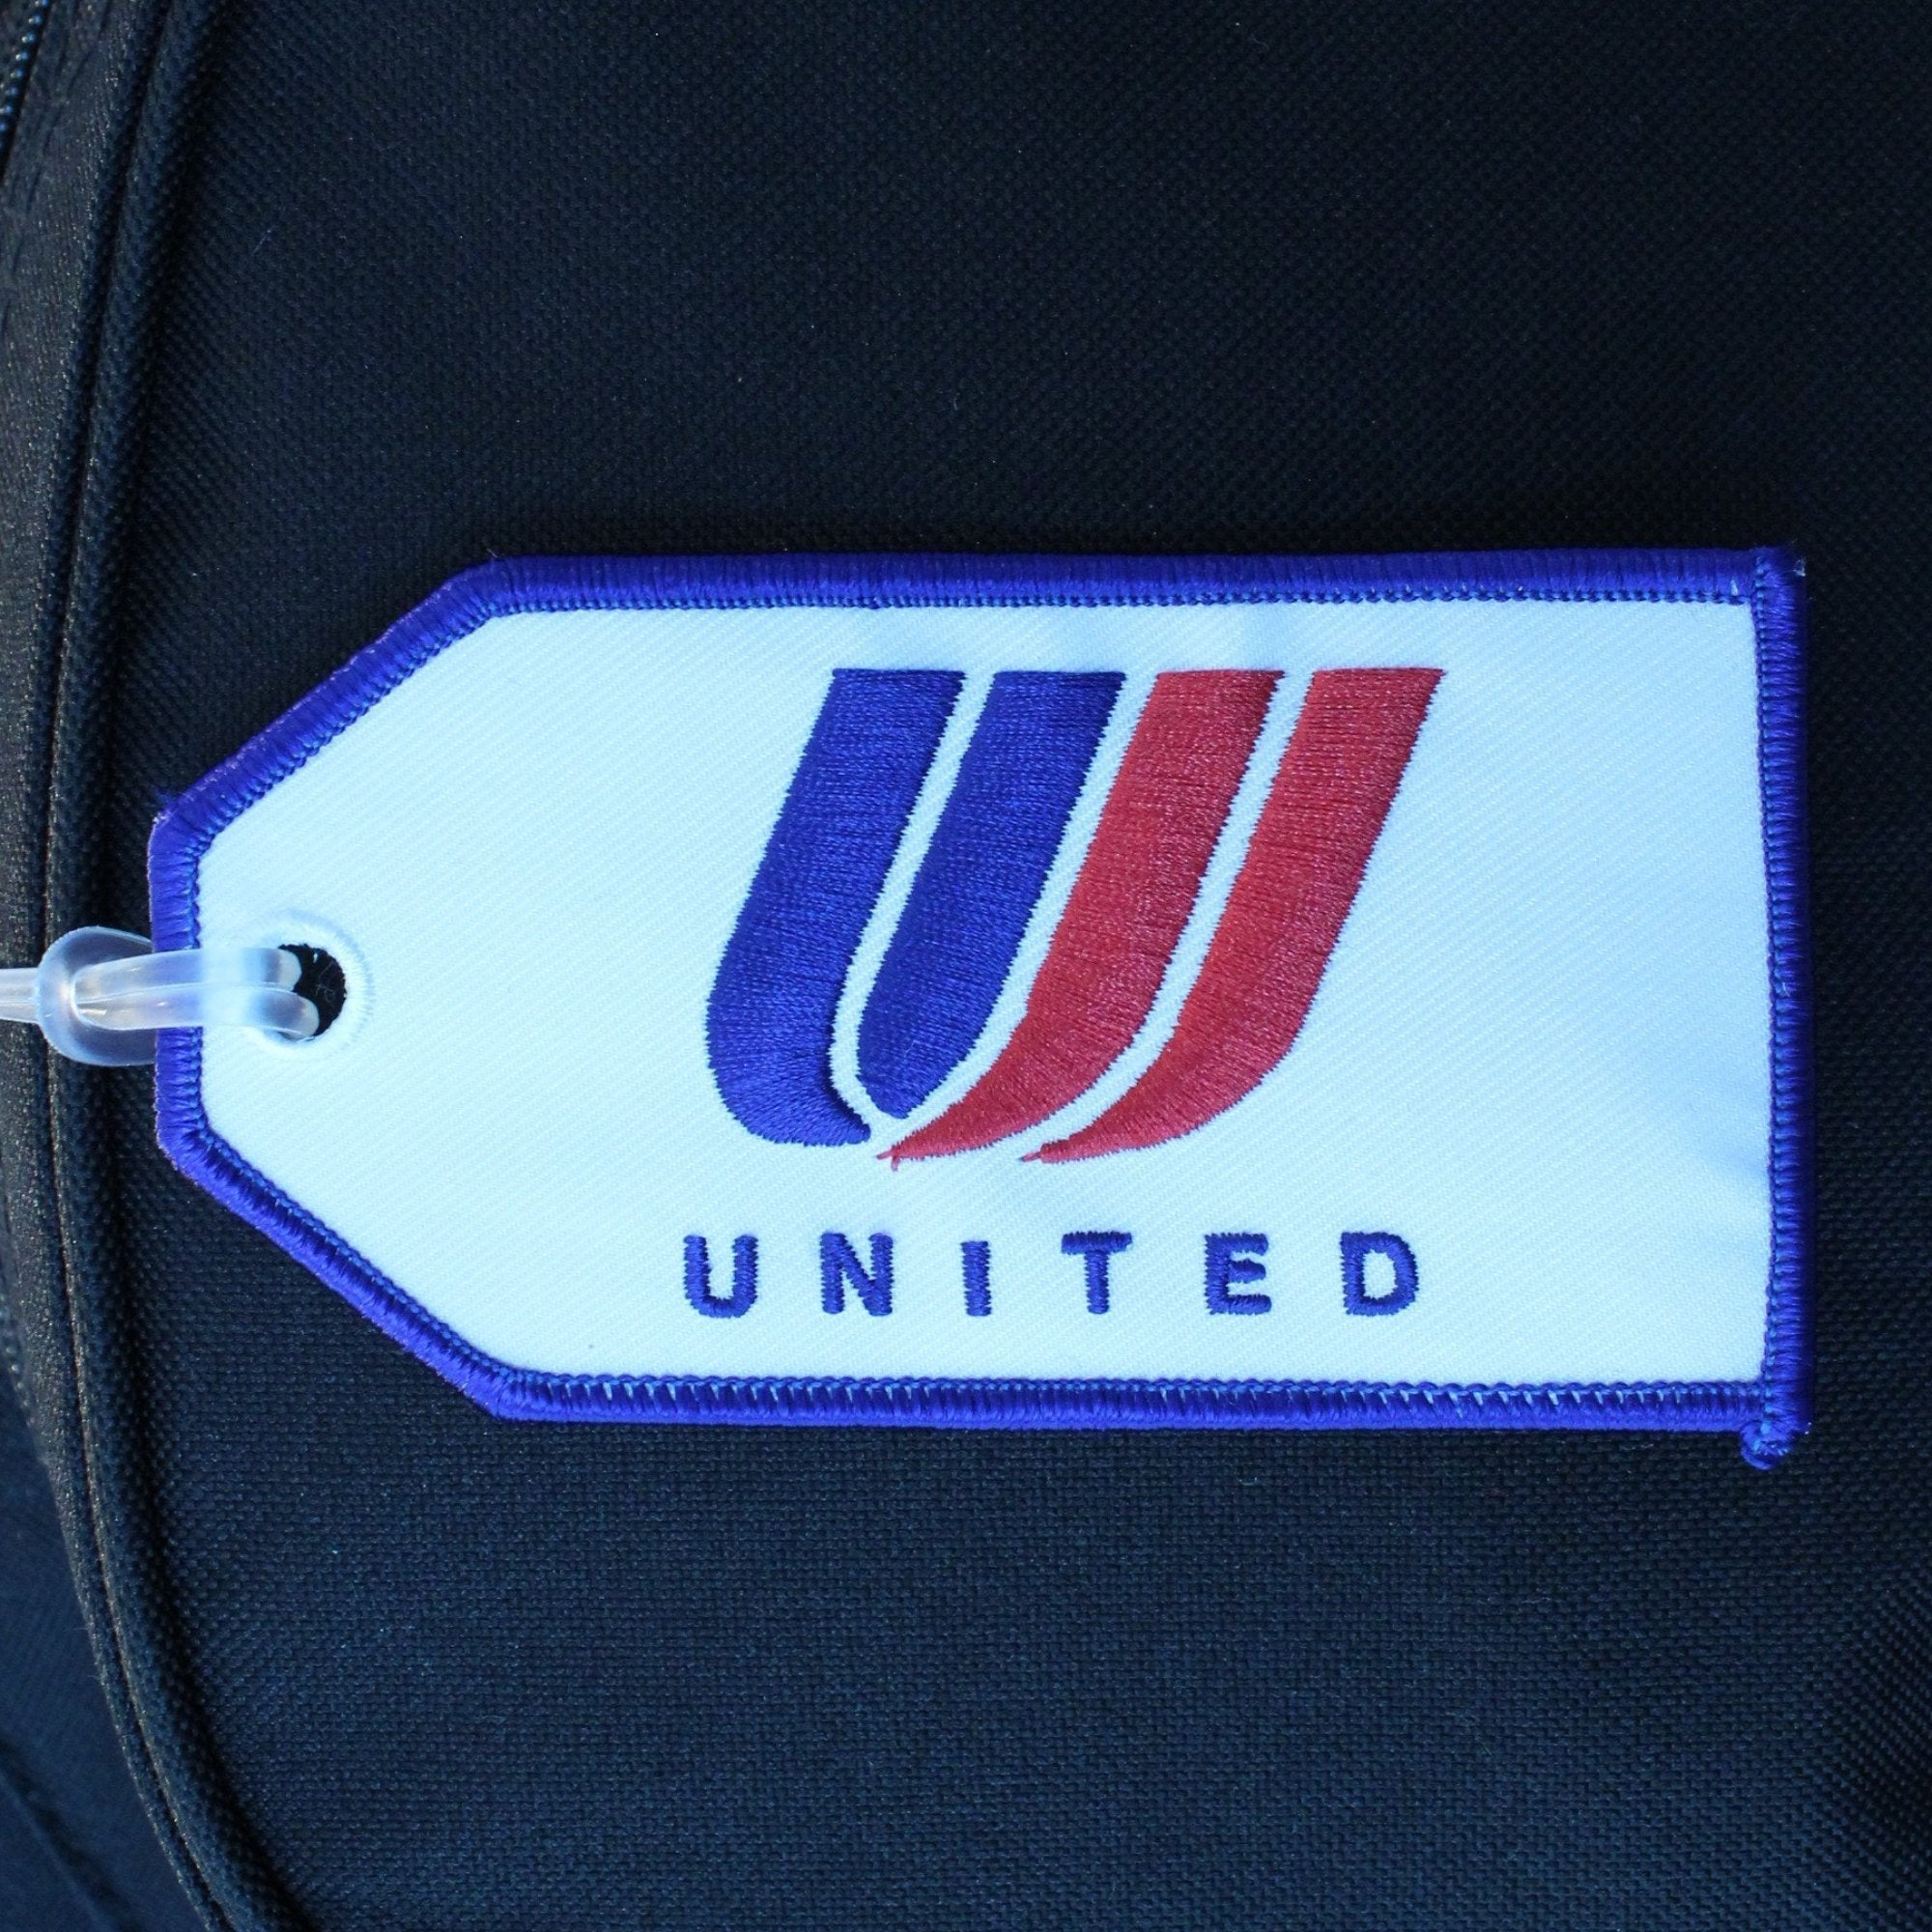 United - Bag Tag